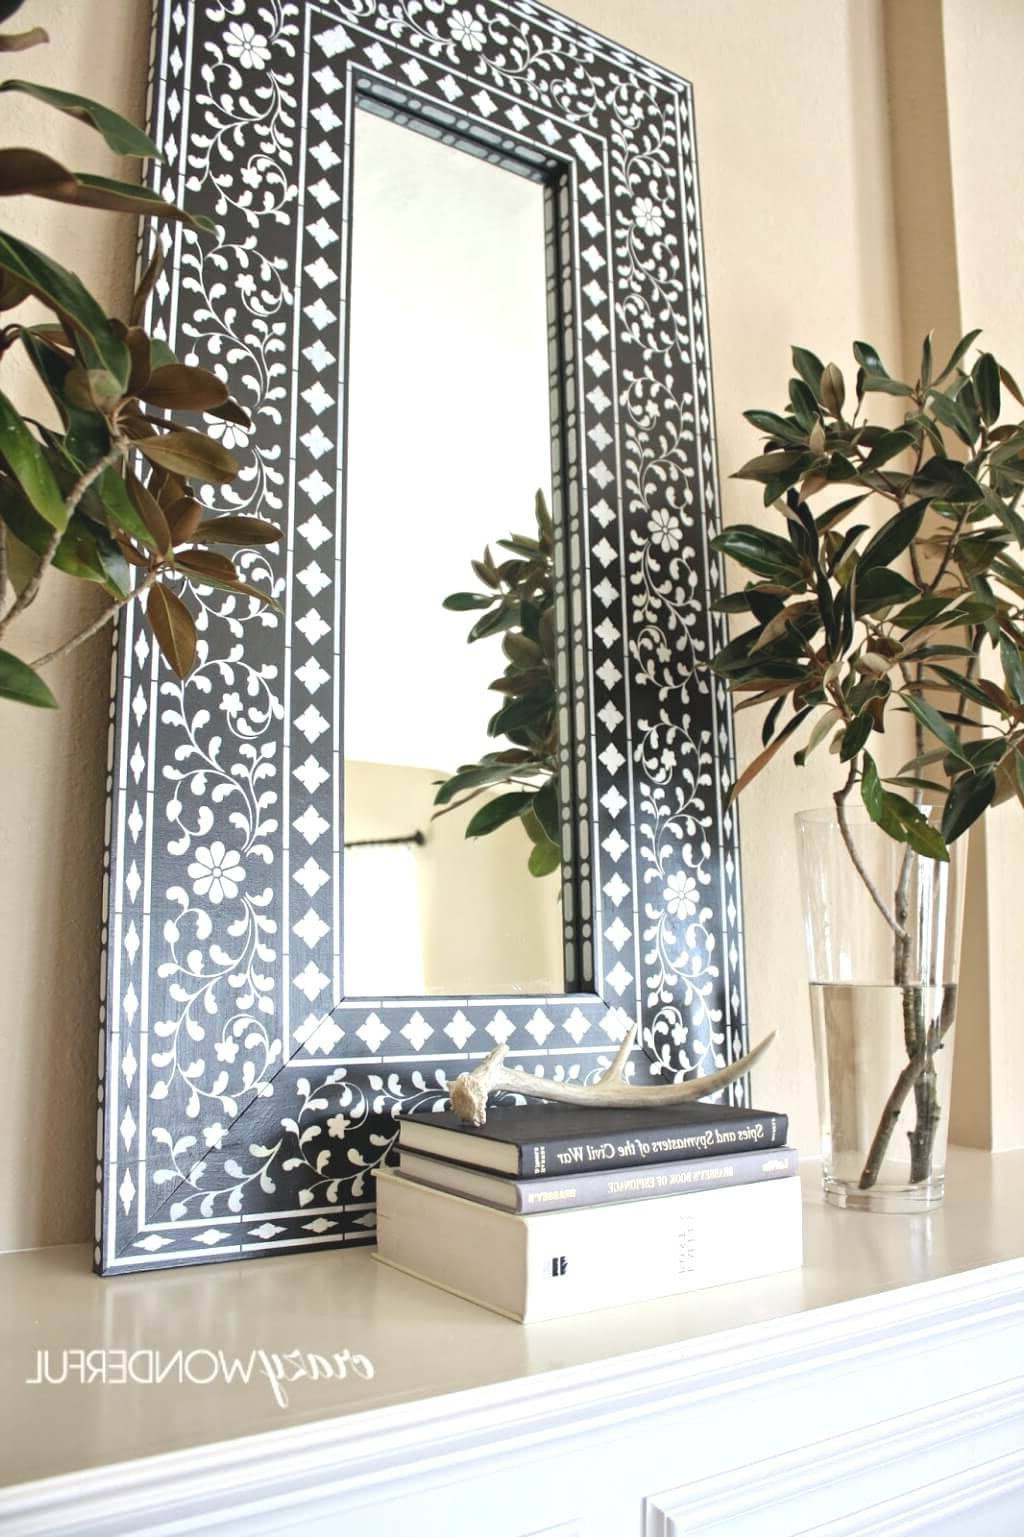 Big Decorative Wall Mirrors With Latest Drop Dead Gorgeous Oversized Round Wall Mirrors Decorating Cool (View 9 of 20)